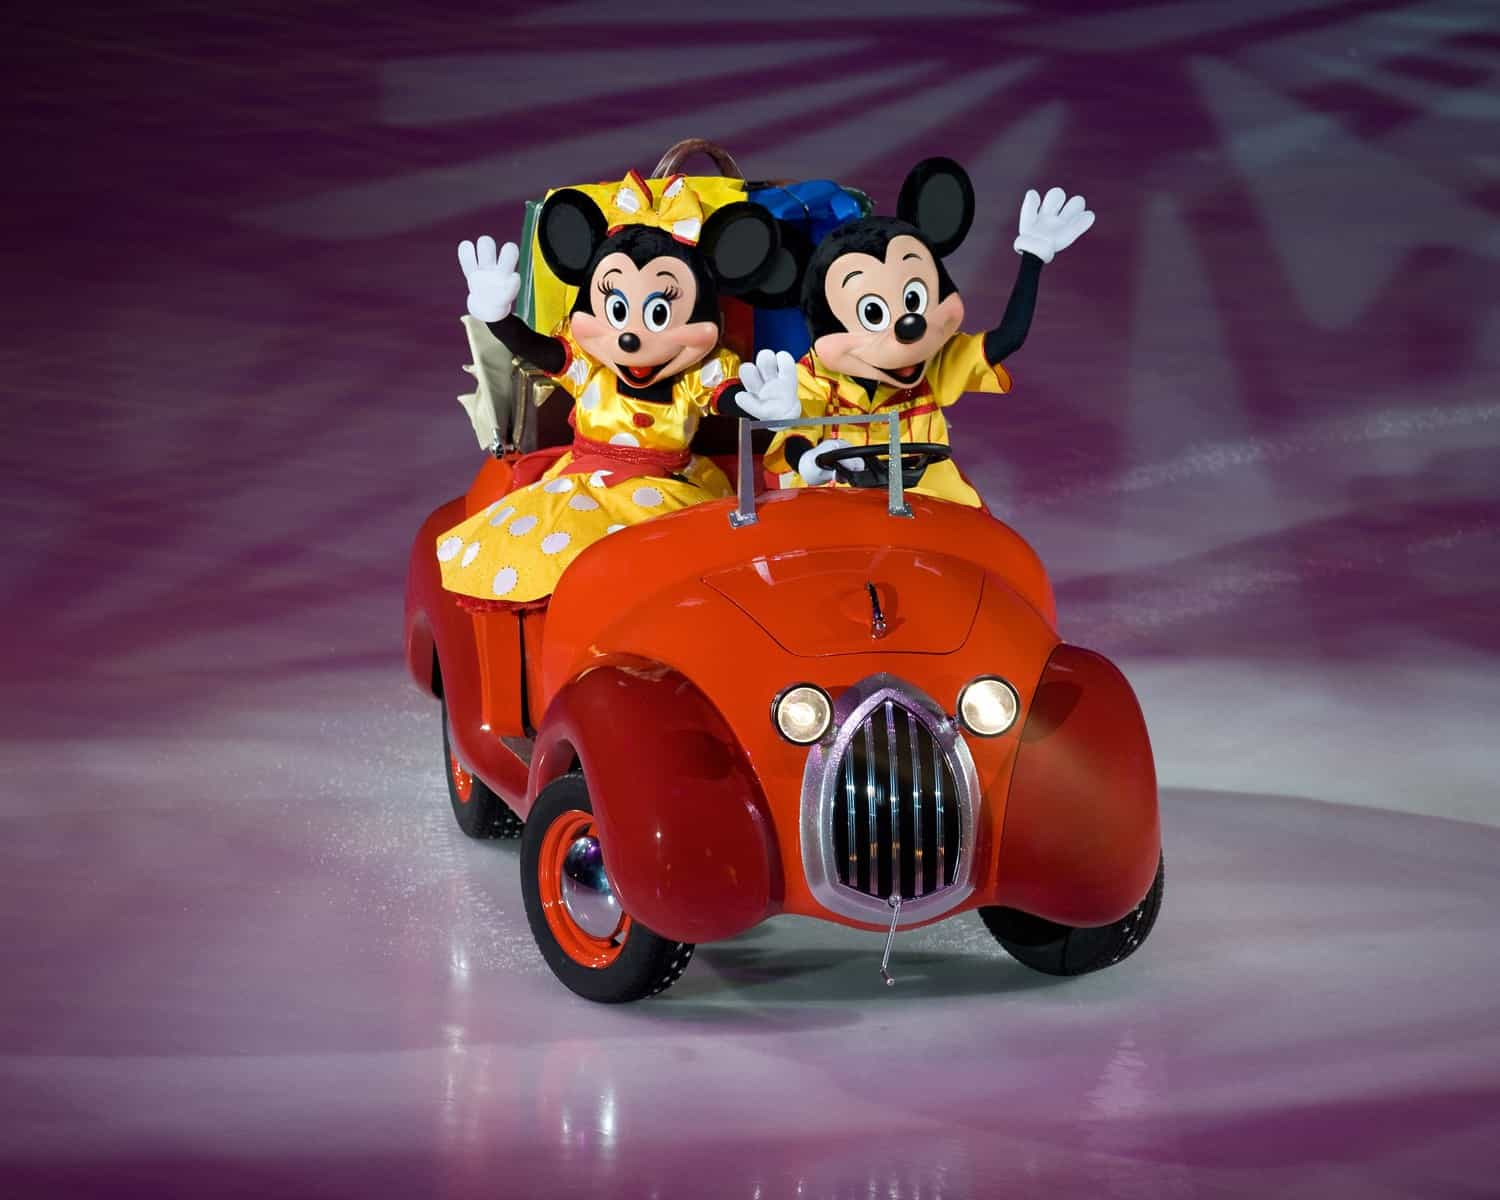 Mickey and Minnie mouse on the ice in a car as part of Disney on Ice Worlds of Enchantment